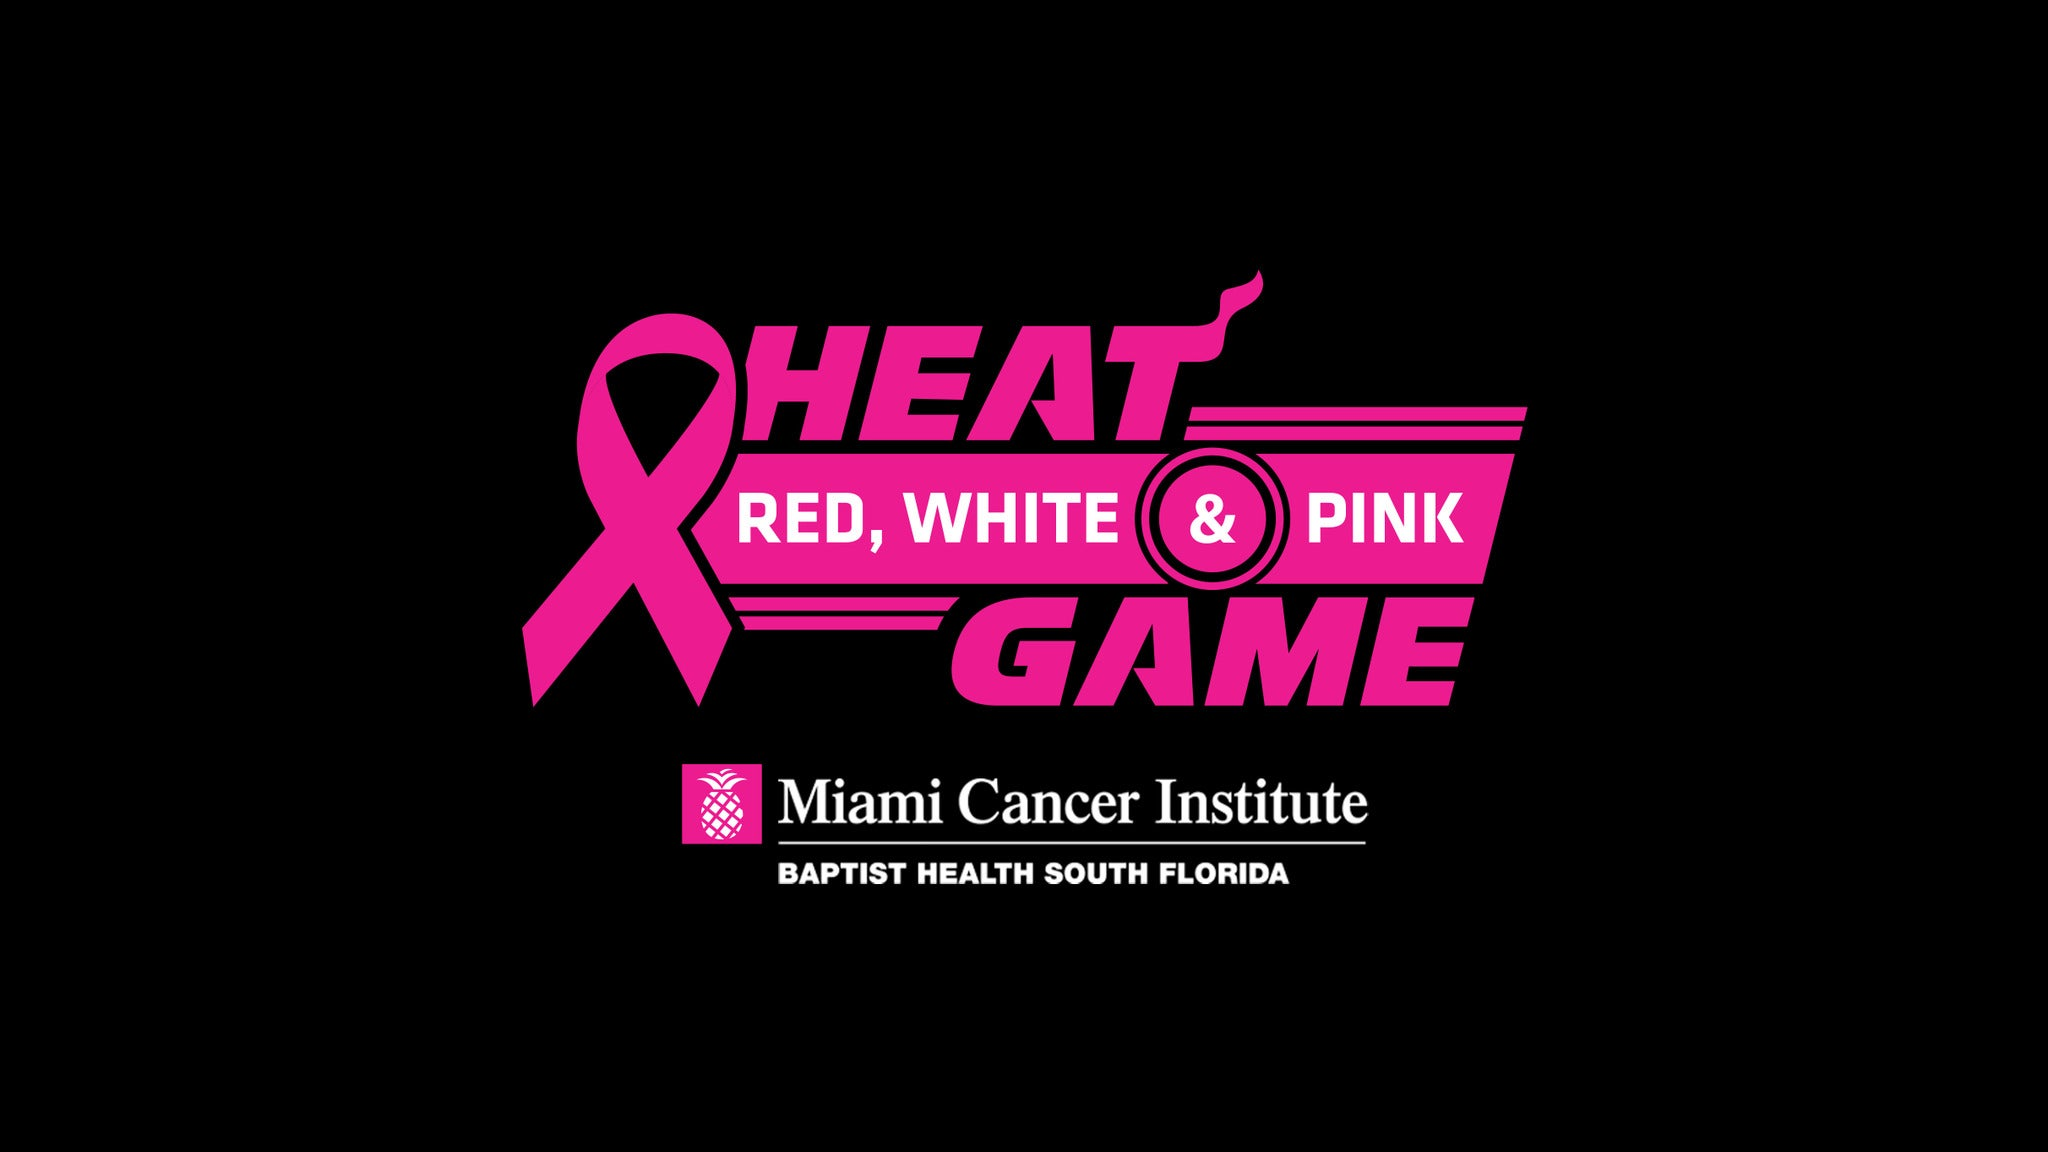 Miami Heat Red, White & Pink Game at AmericanAirlines Arena